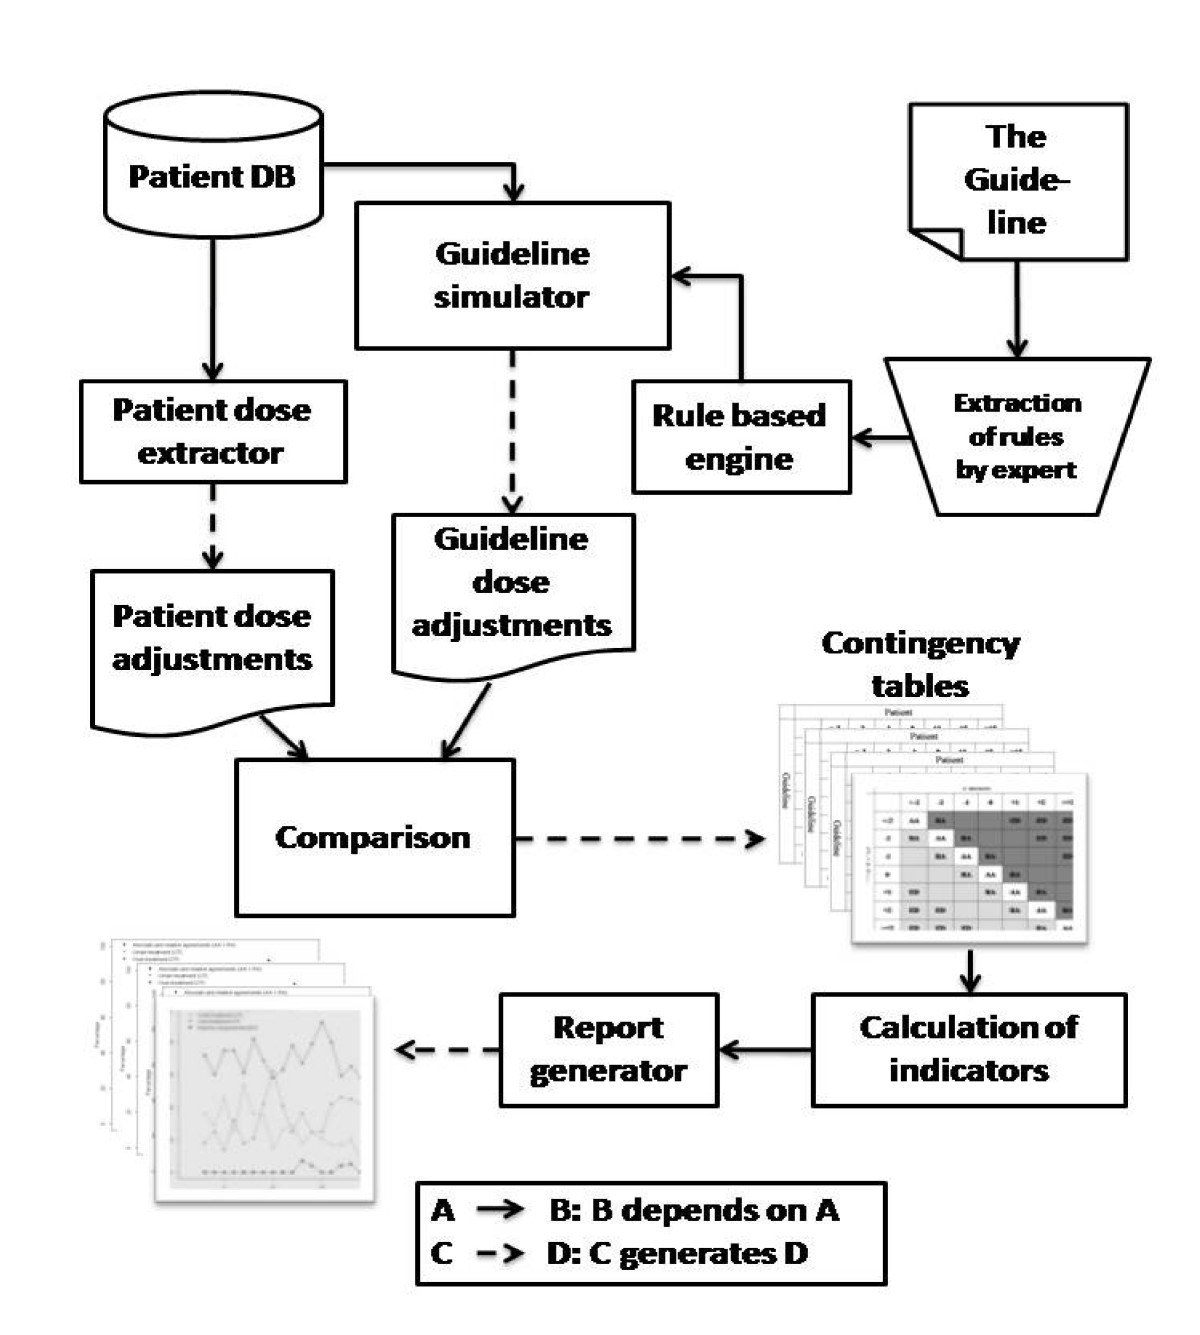 http://static-content.springer.com/image/art%3A10.1186%2F1472-6947-8-55/MediaObjects/12911_2008_Article_227_Fig1_HTML.jpg